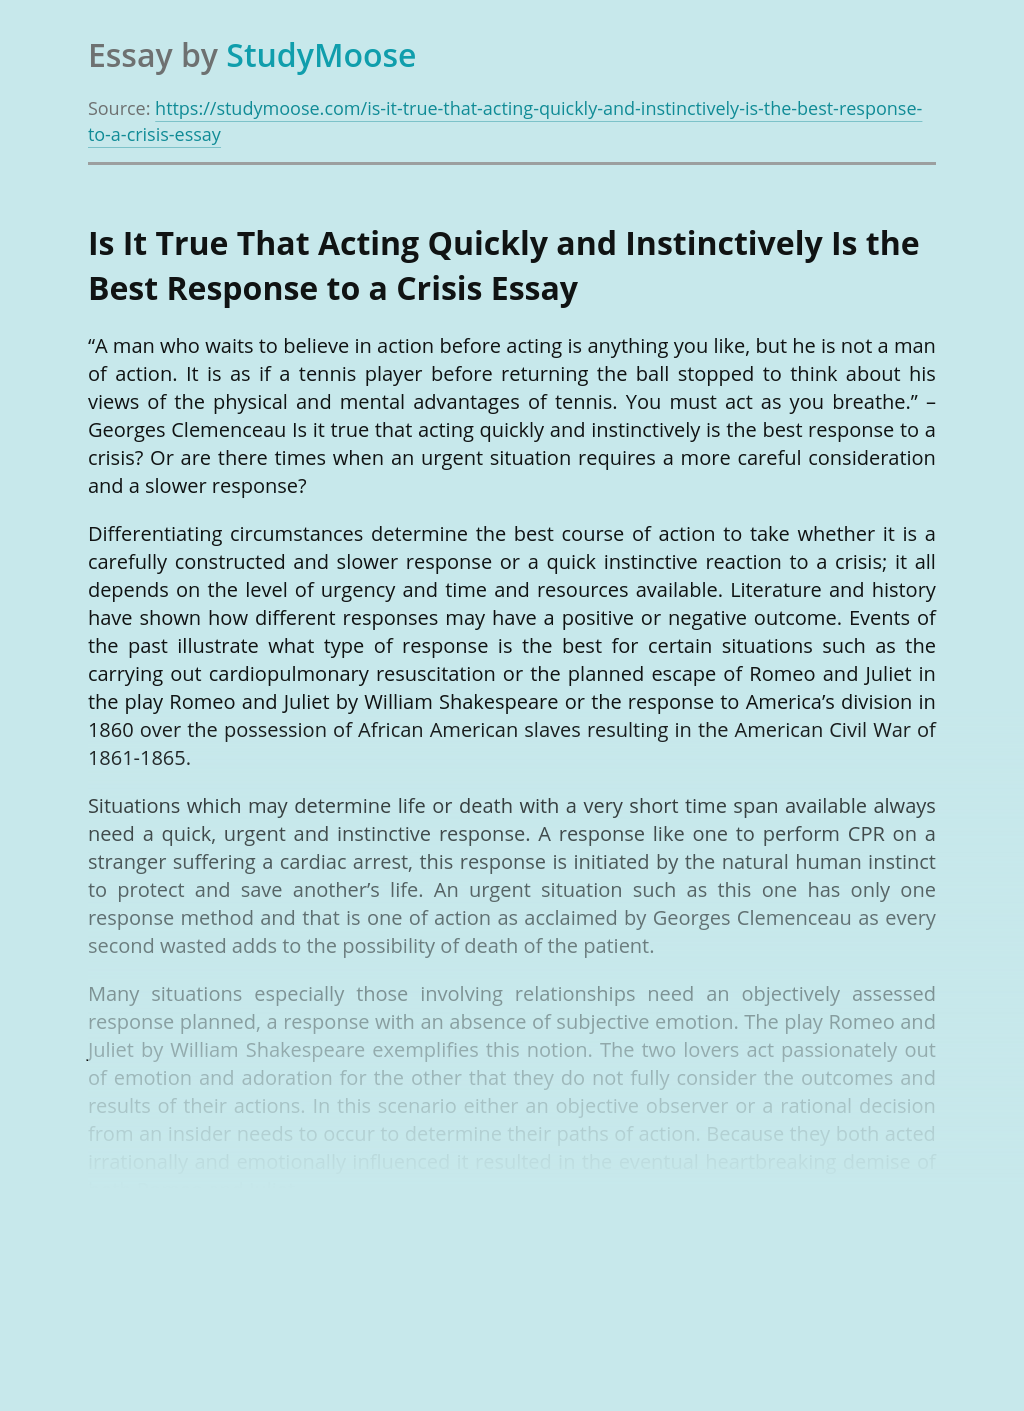 Is It True That Acting Quickly and Instinctively Is the Best Response to a Crisis